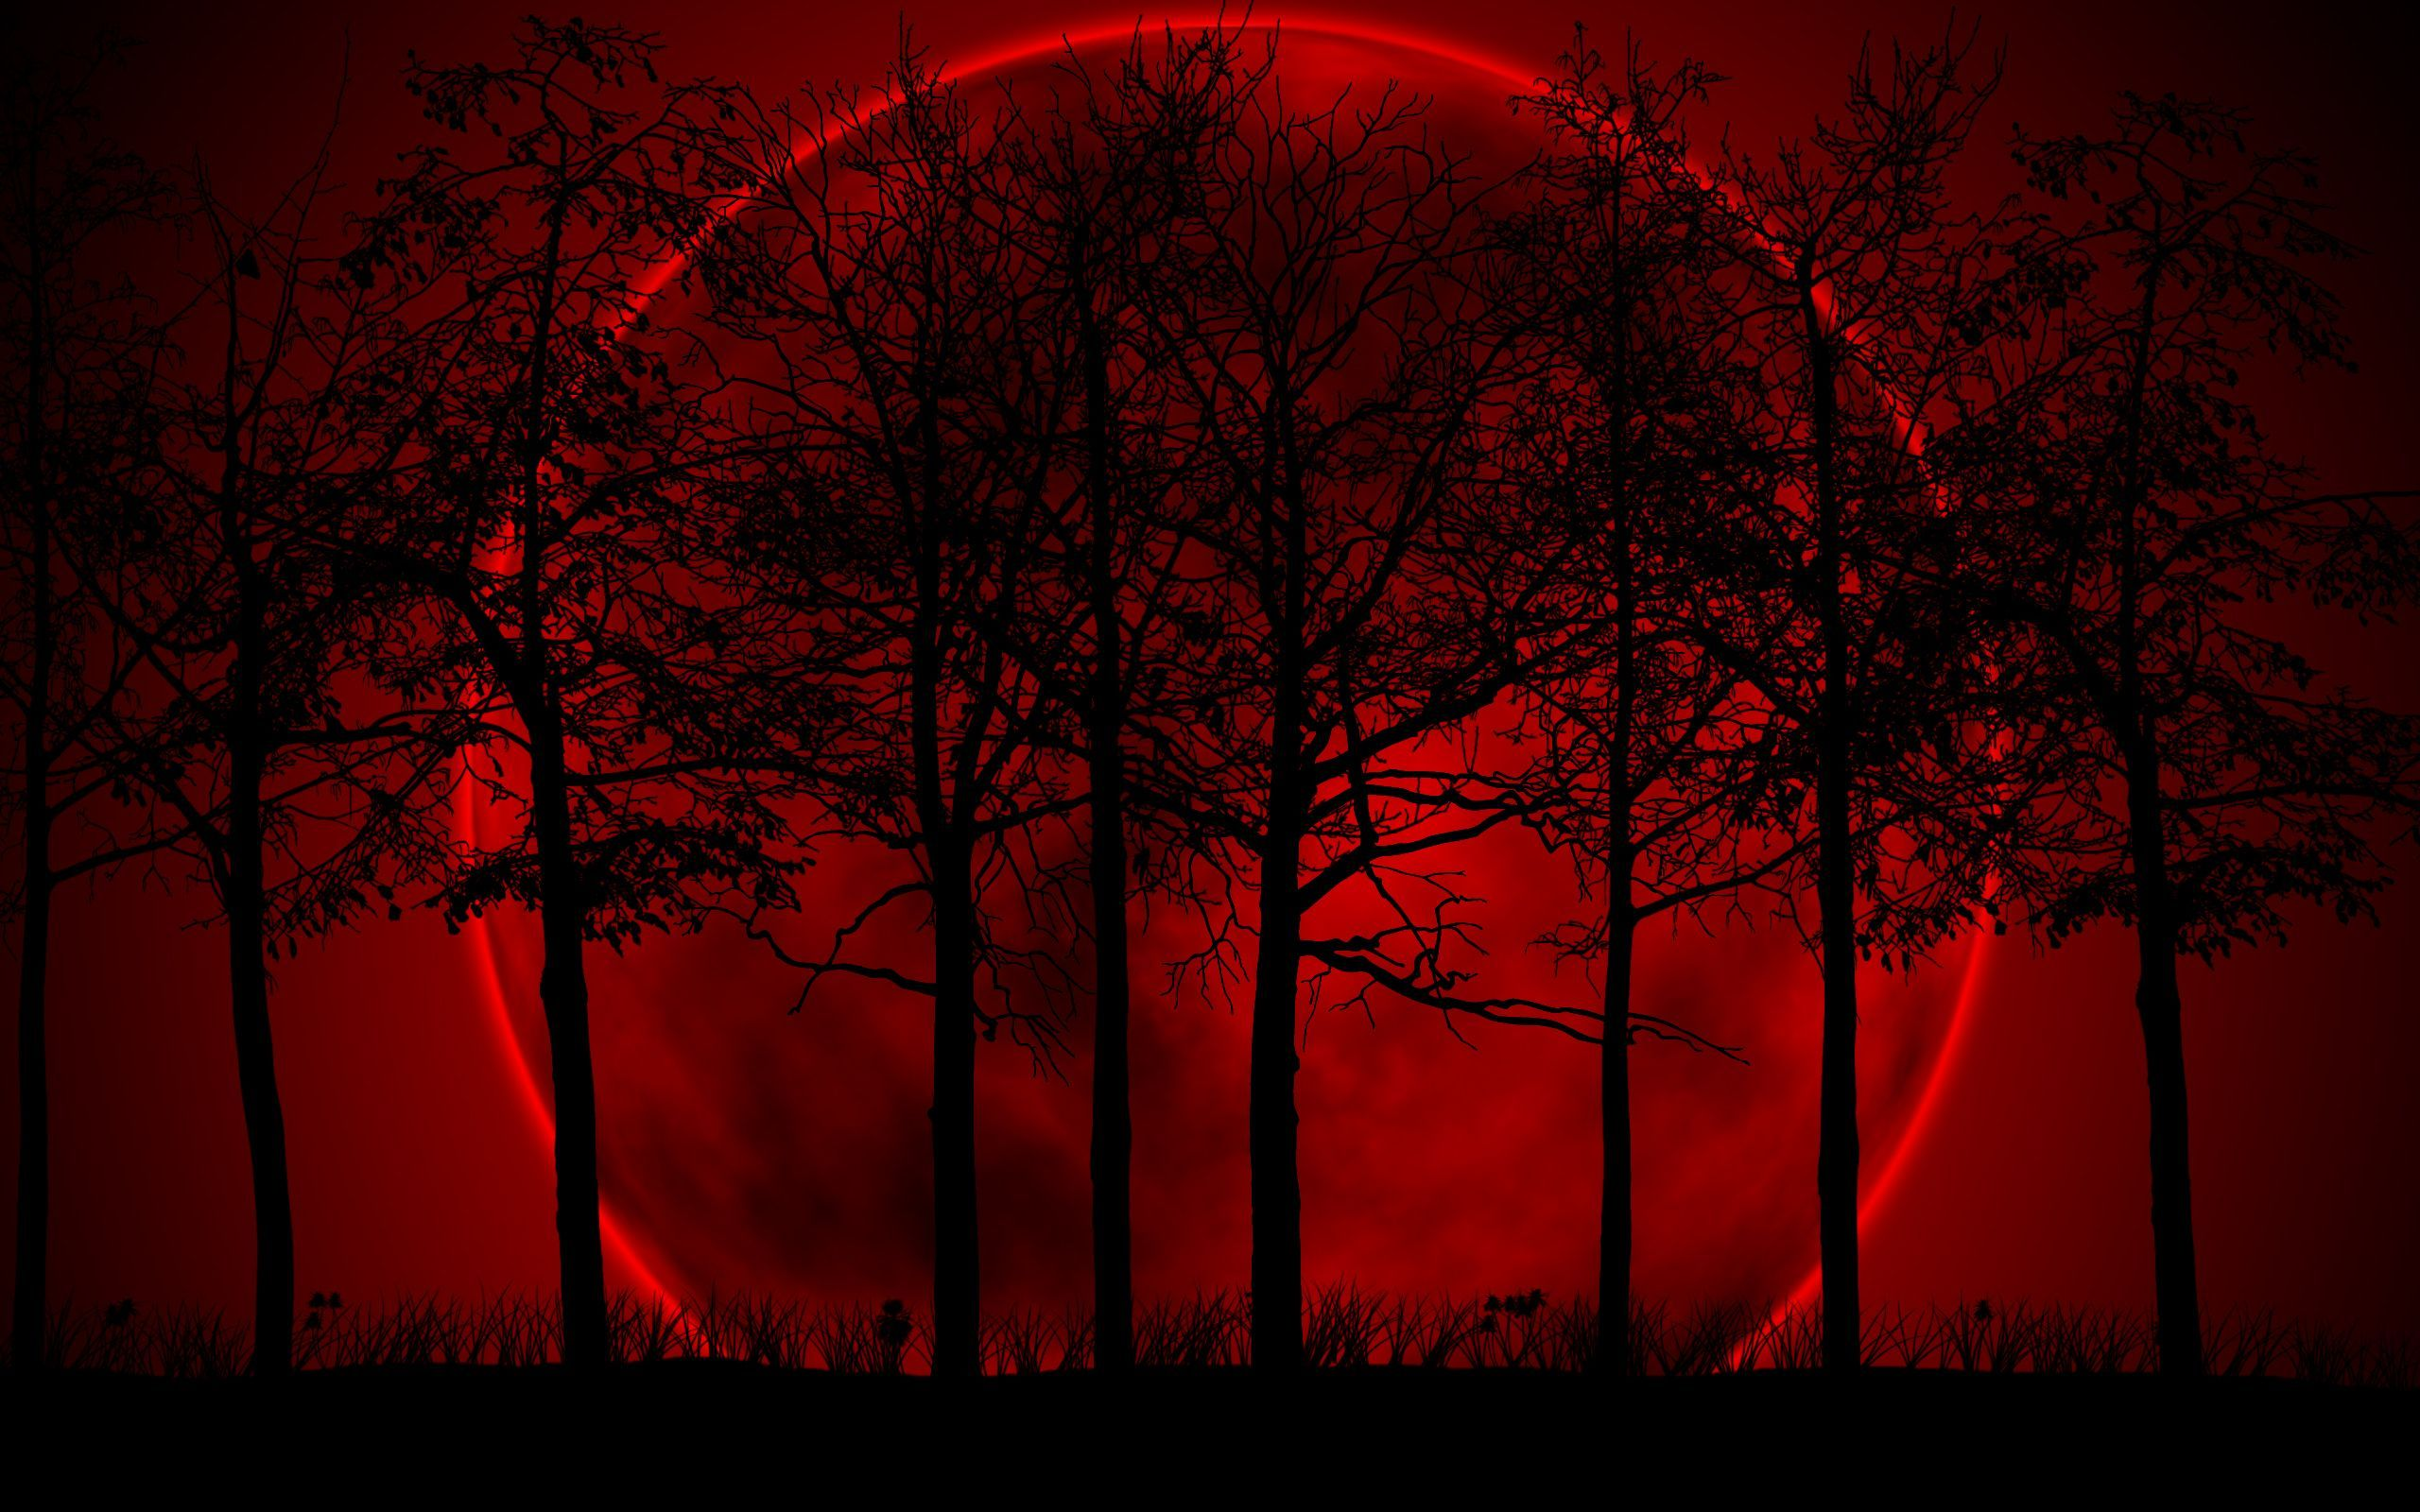 red moon wallpapers, pics of a blood moon